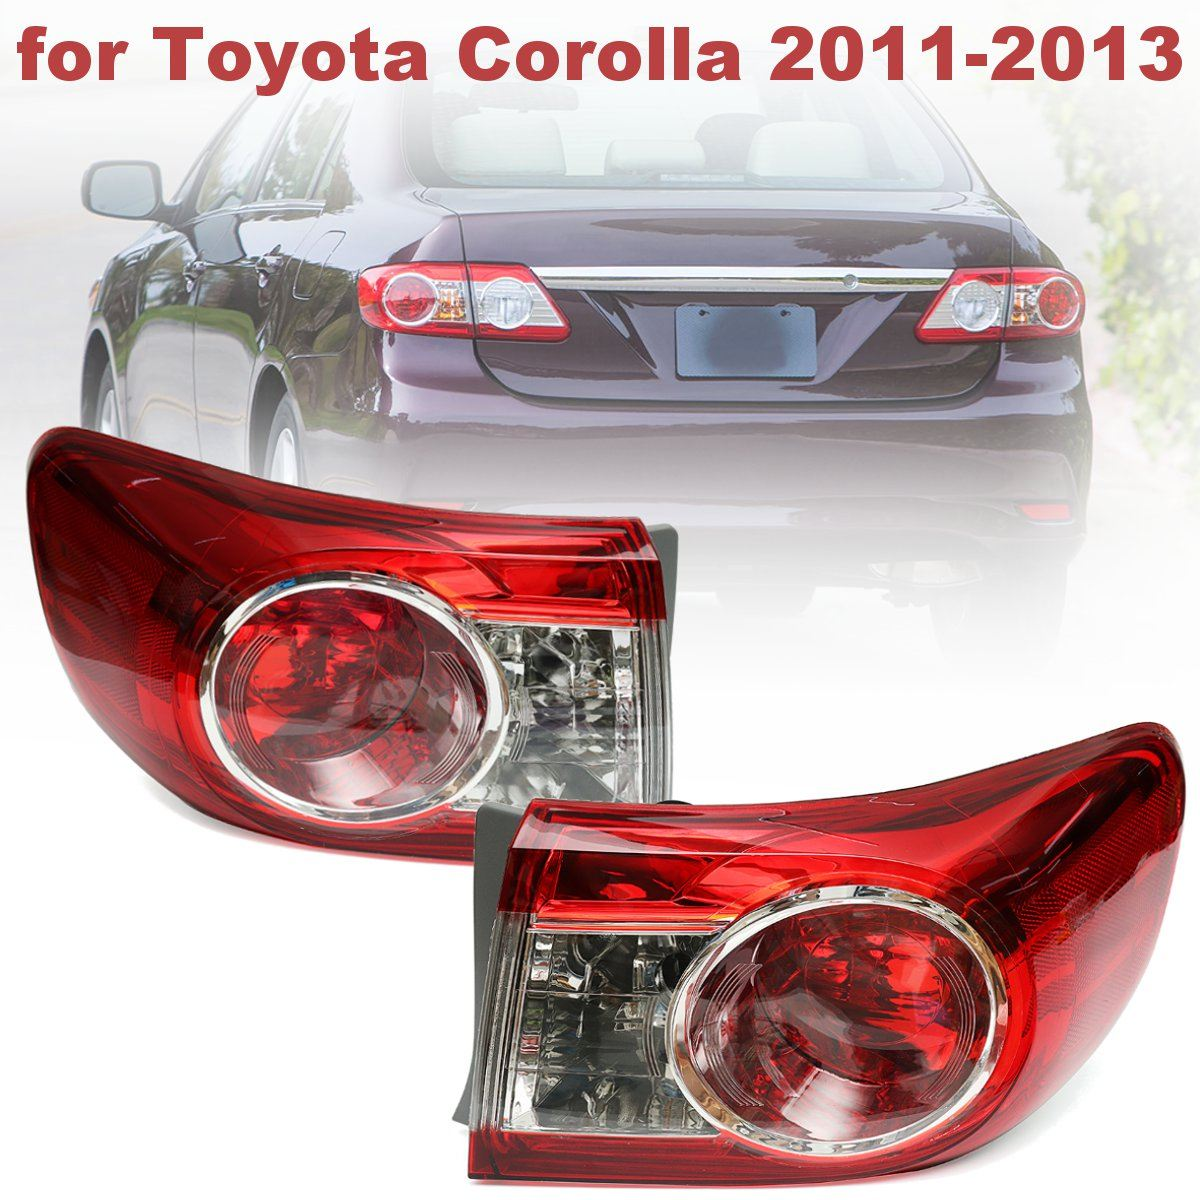 #TO2804111 #81560-02580 Replacement Pair Red Rear Left Right Side Tail Lights Brake Lamps for Toyota Corolla 2011 2012 2013<br>